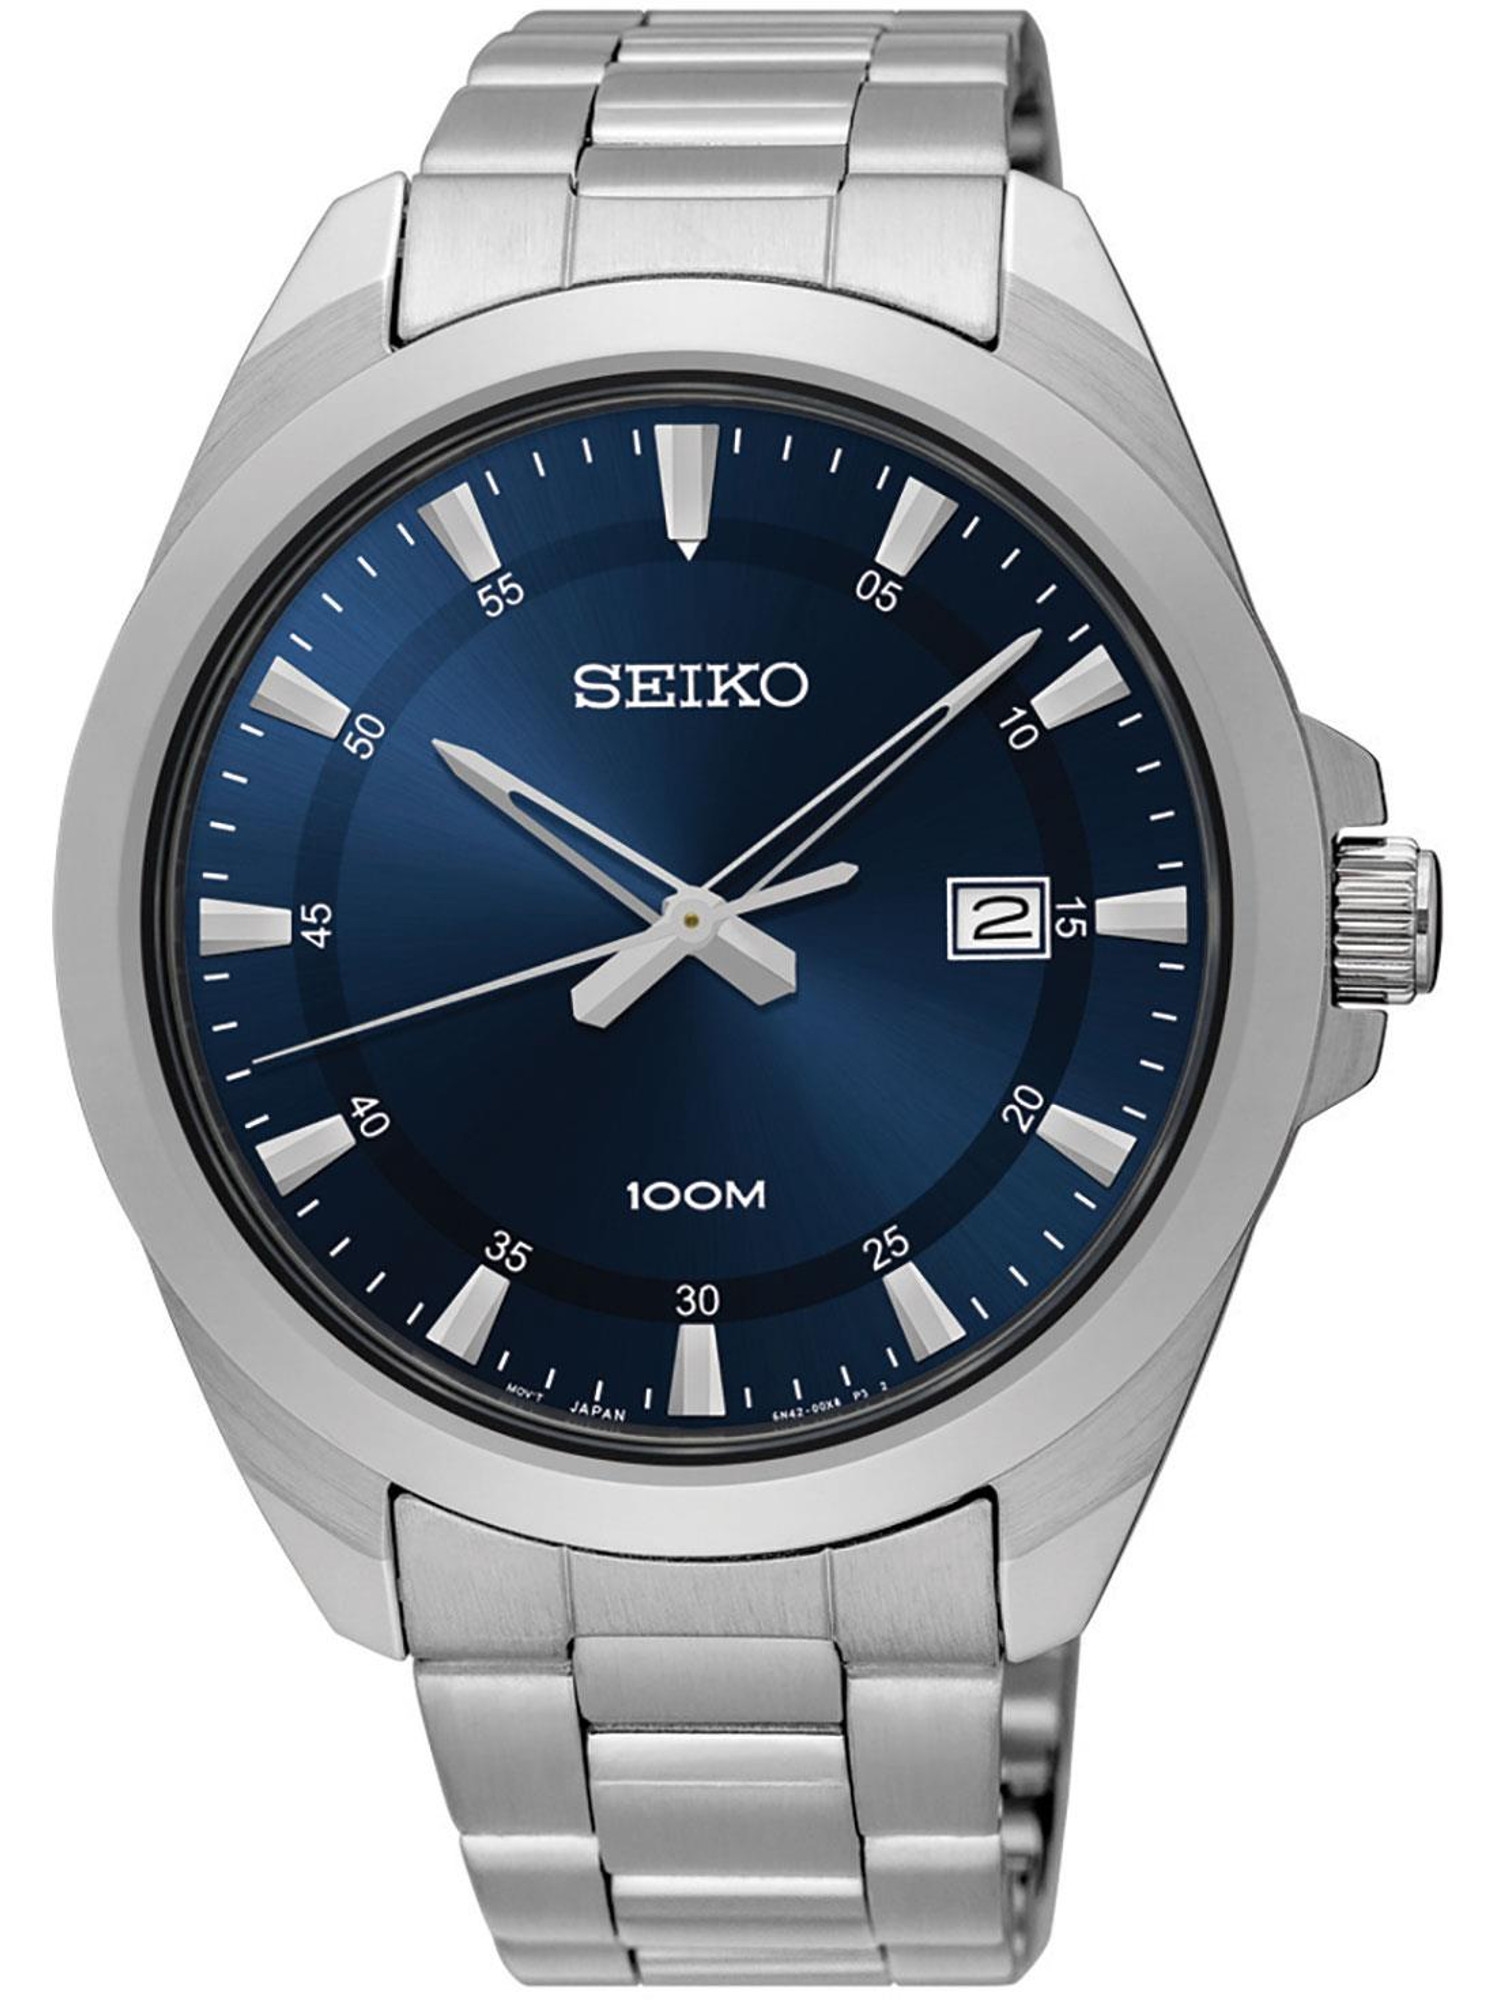 Seiko Men's Blue Dial Stainless Steel Watch with Date